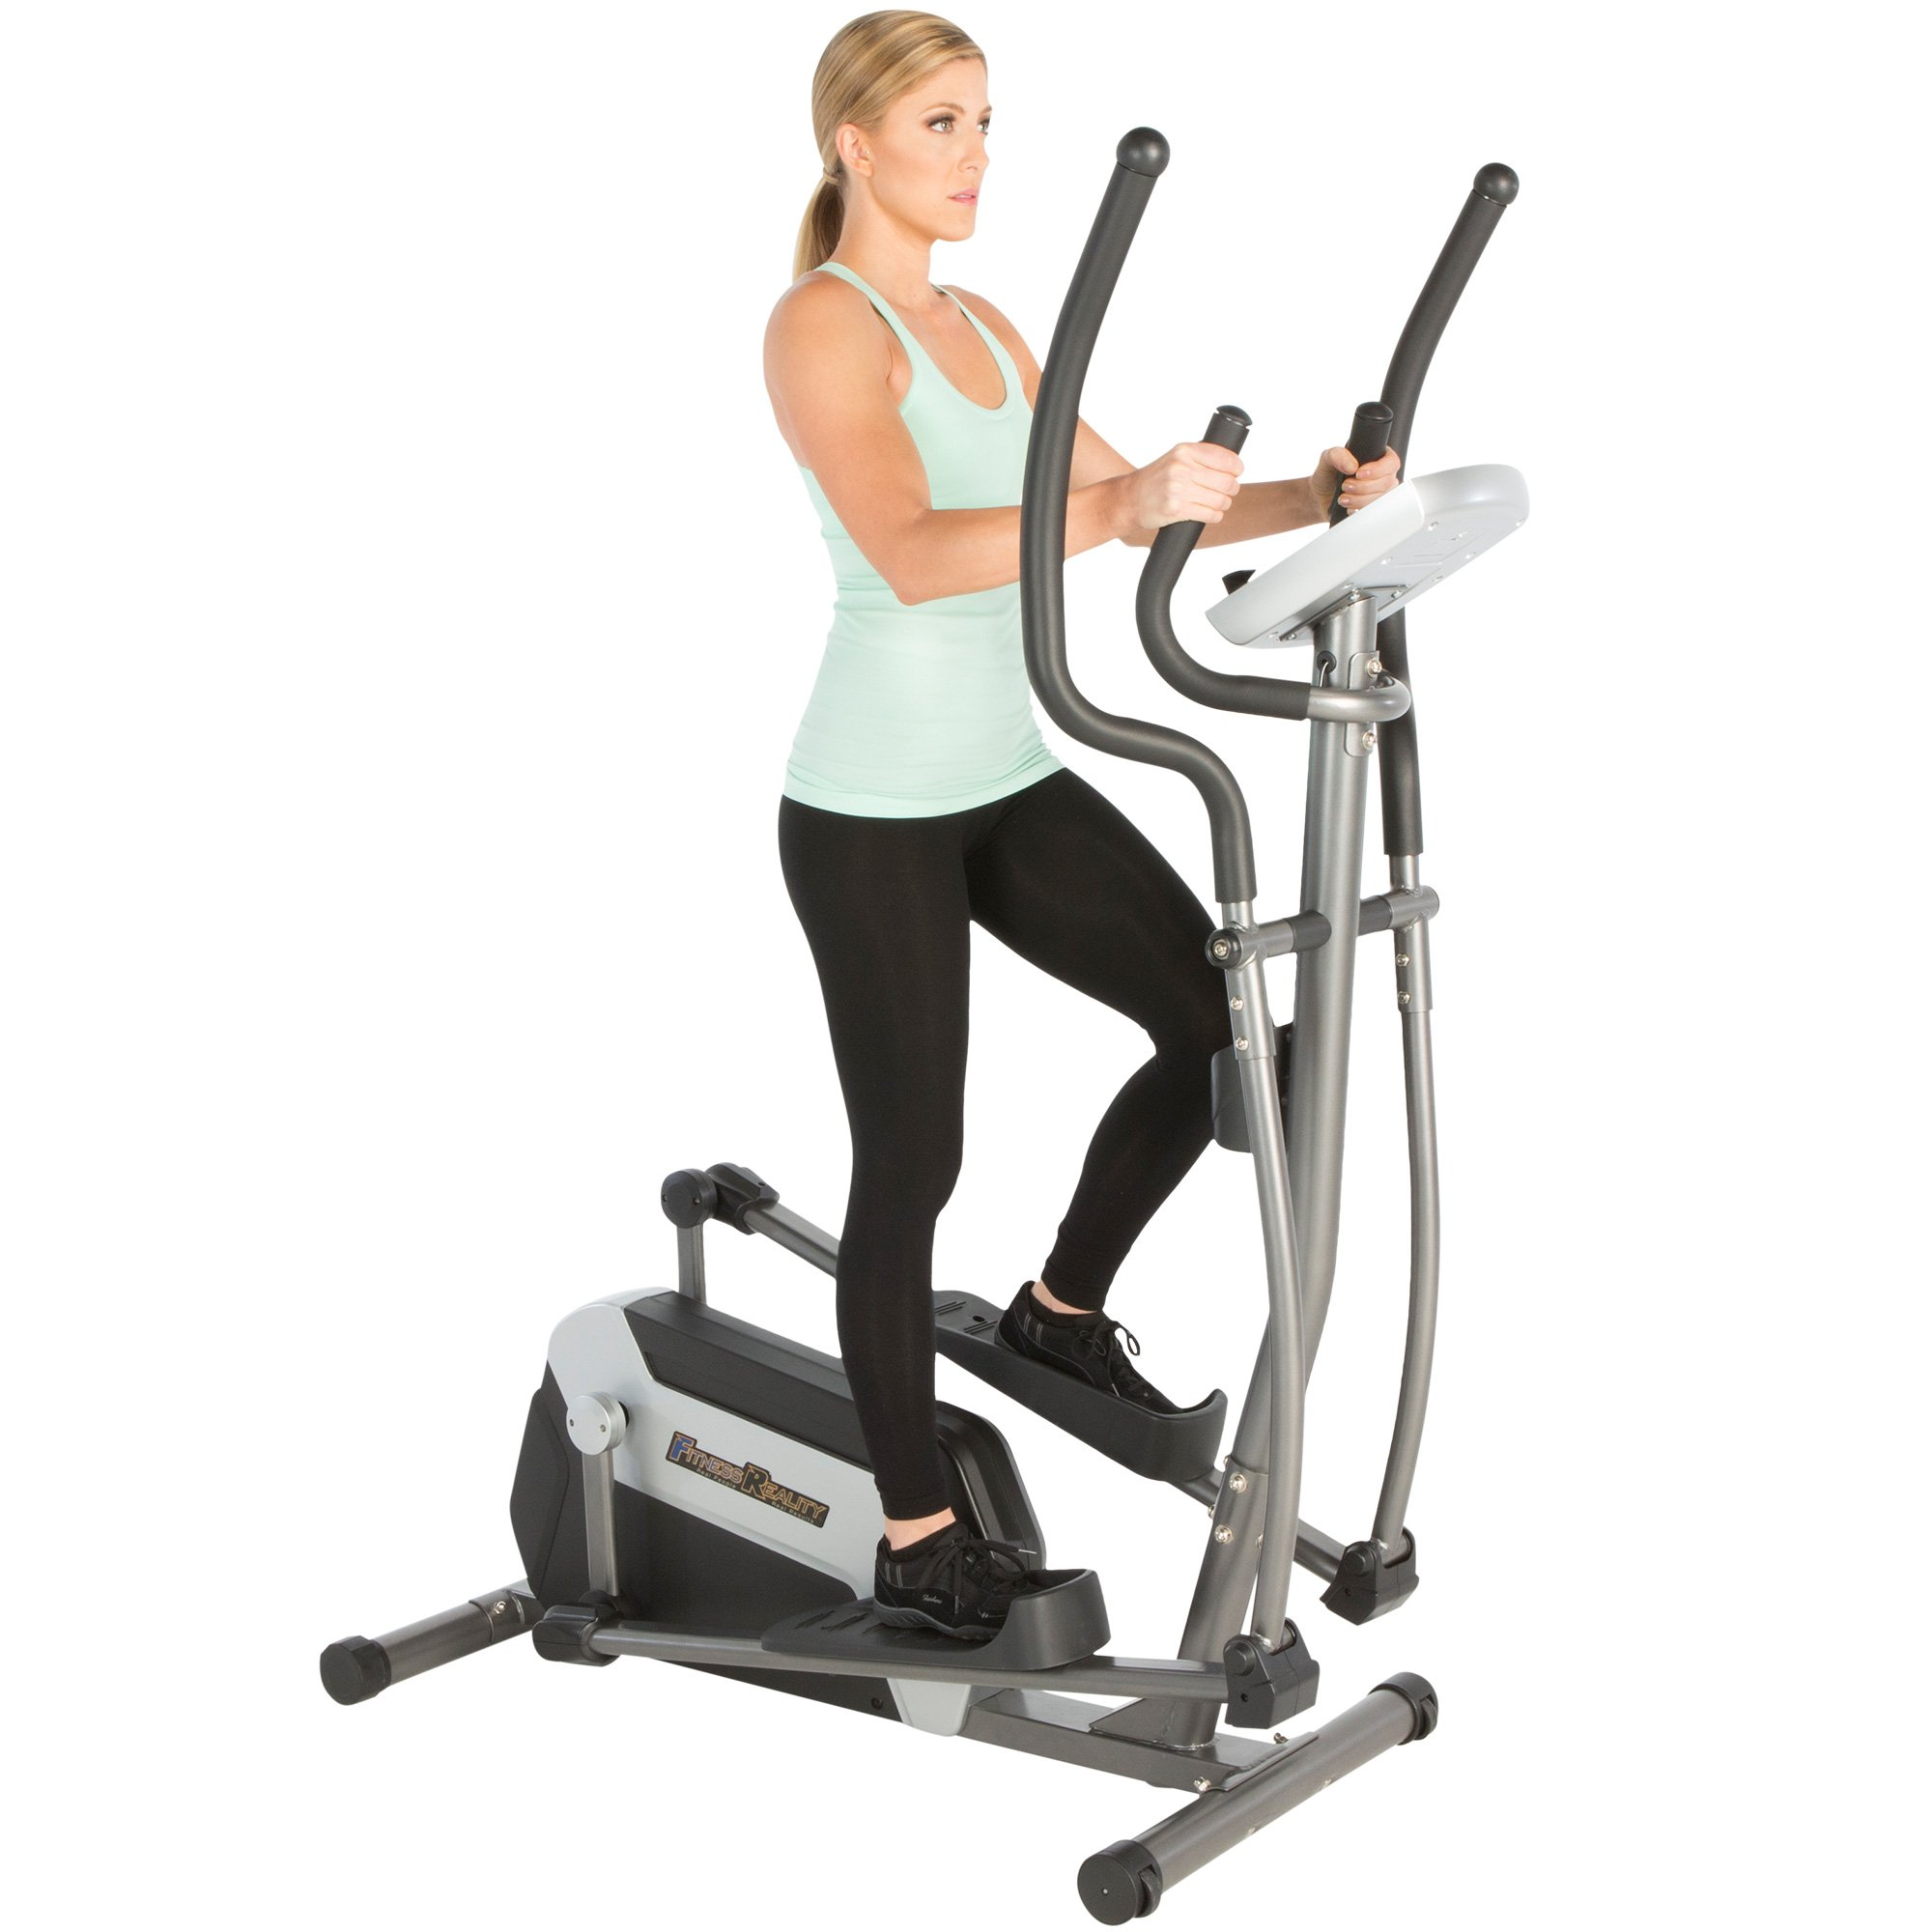 Fitness Reality E5500XL Magnetic Elliptical Trainer with Comfortable 18'' Stride by Fitness Reality (Image #13)